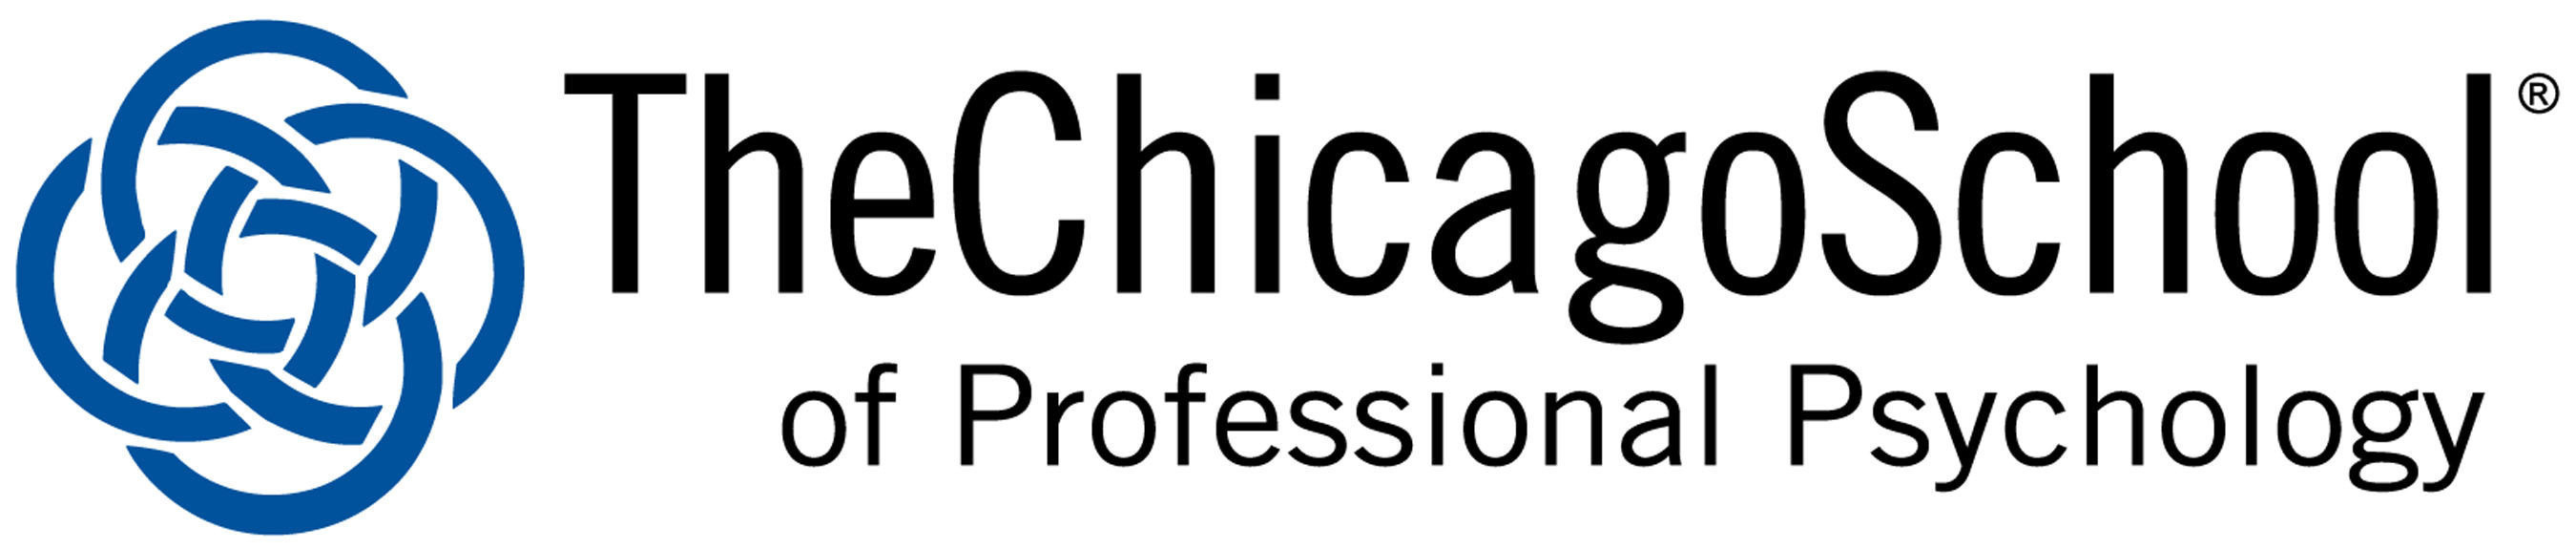 The Chicago School Of Professional Psychology Launches Redesigned Website